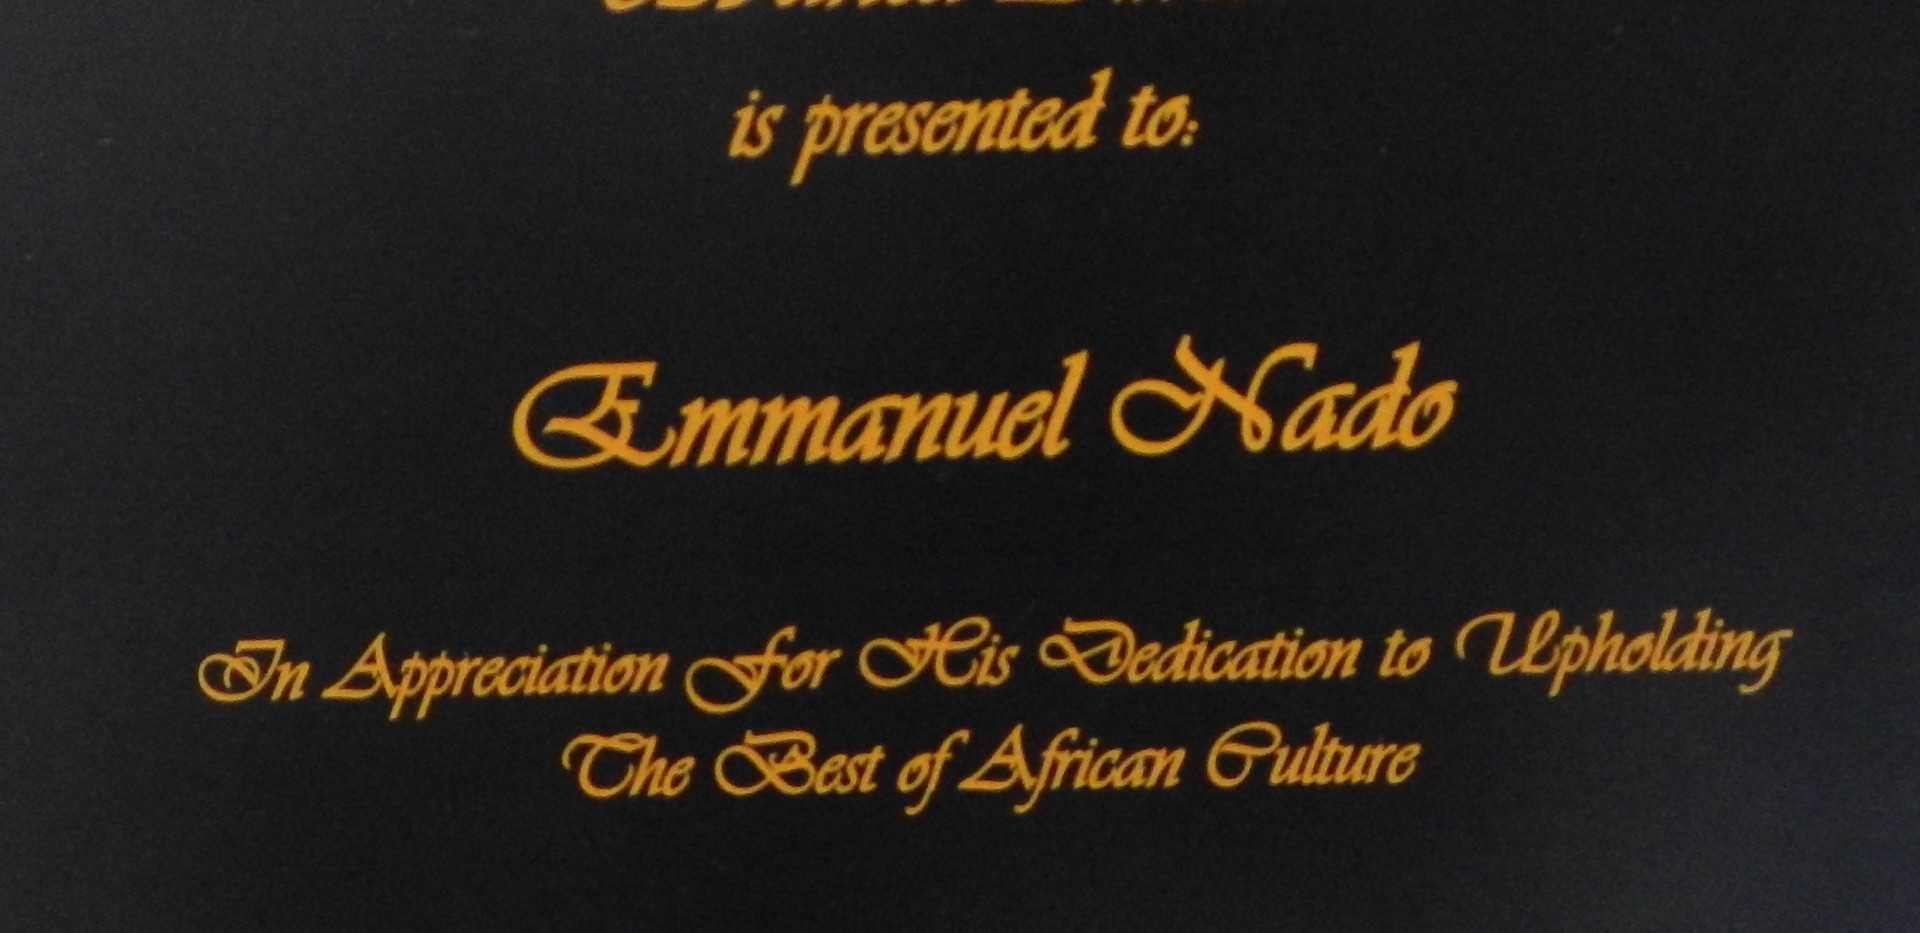 I was honored to be presented this award of Priority Africa Network Organization's Ubuntu  Award.